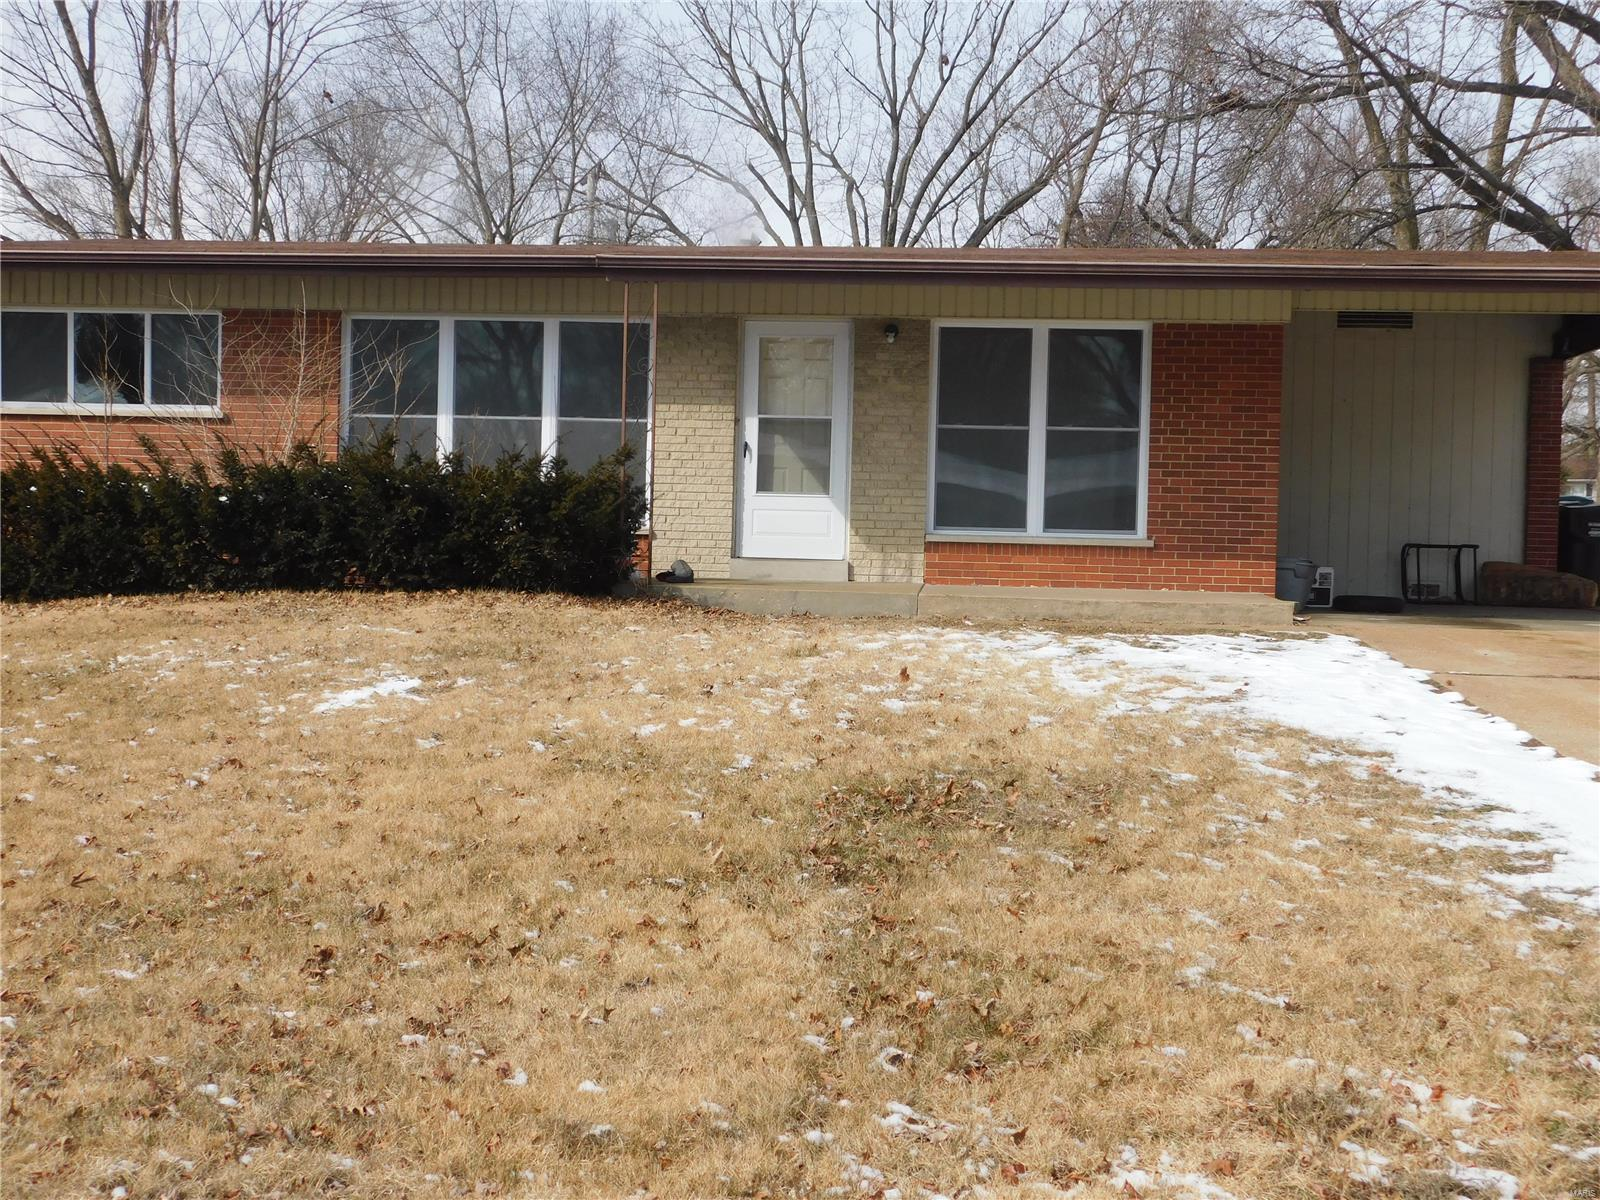 1815 Dunnideer Property Photo - Unincorporated, MO real estate listing